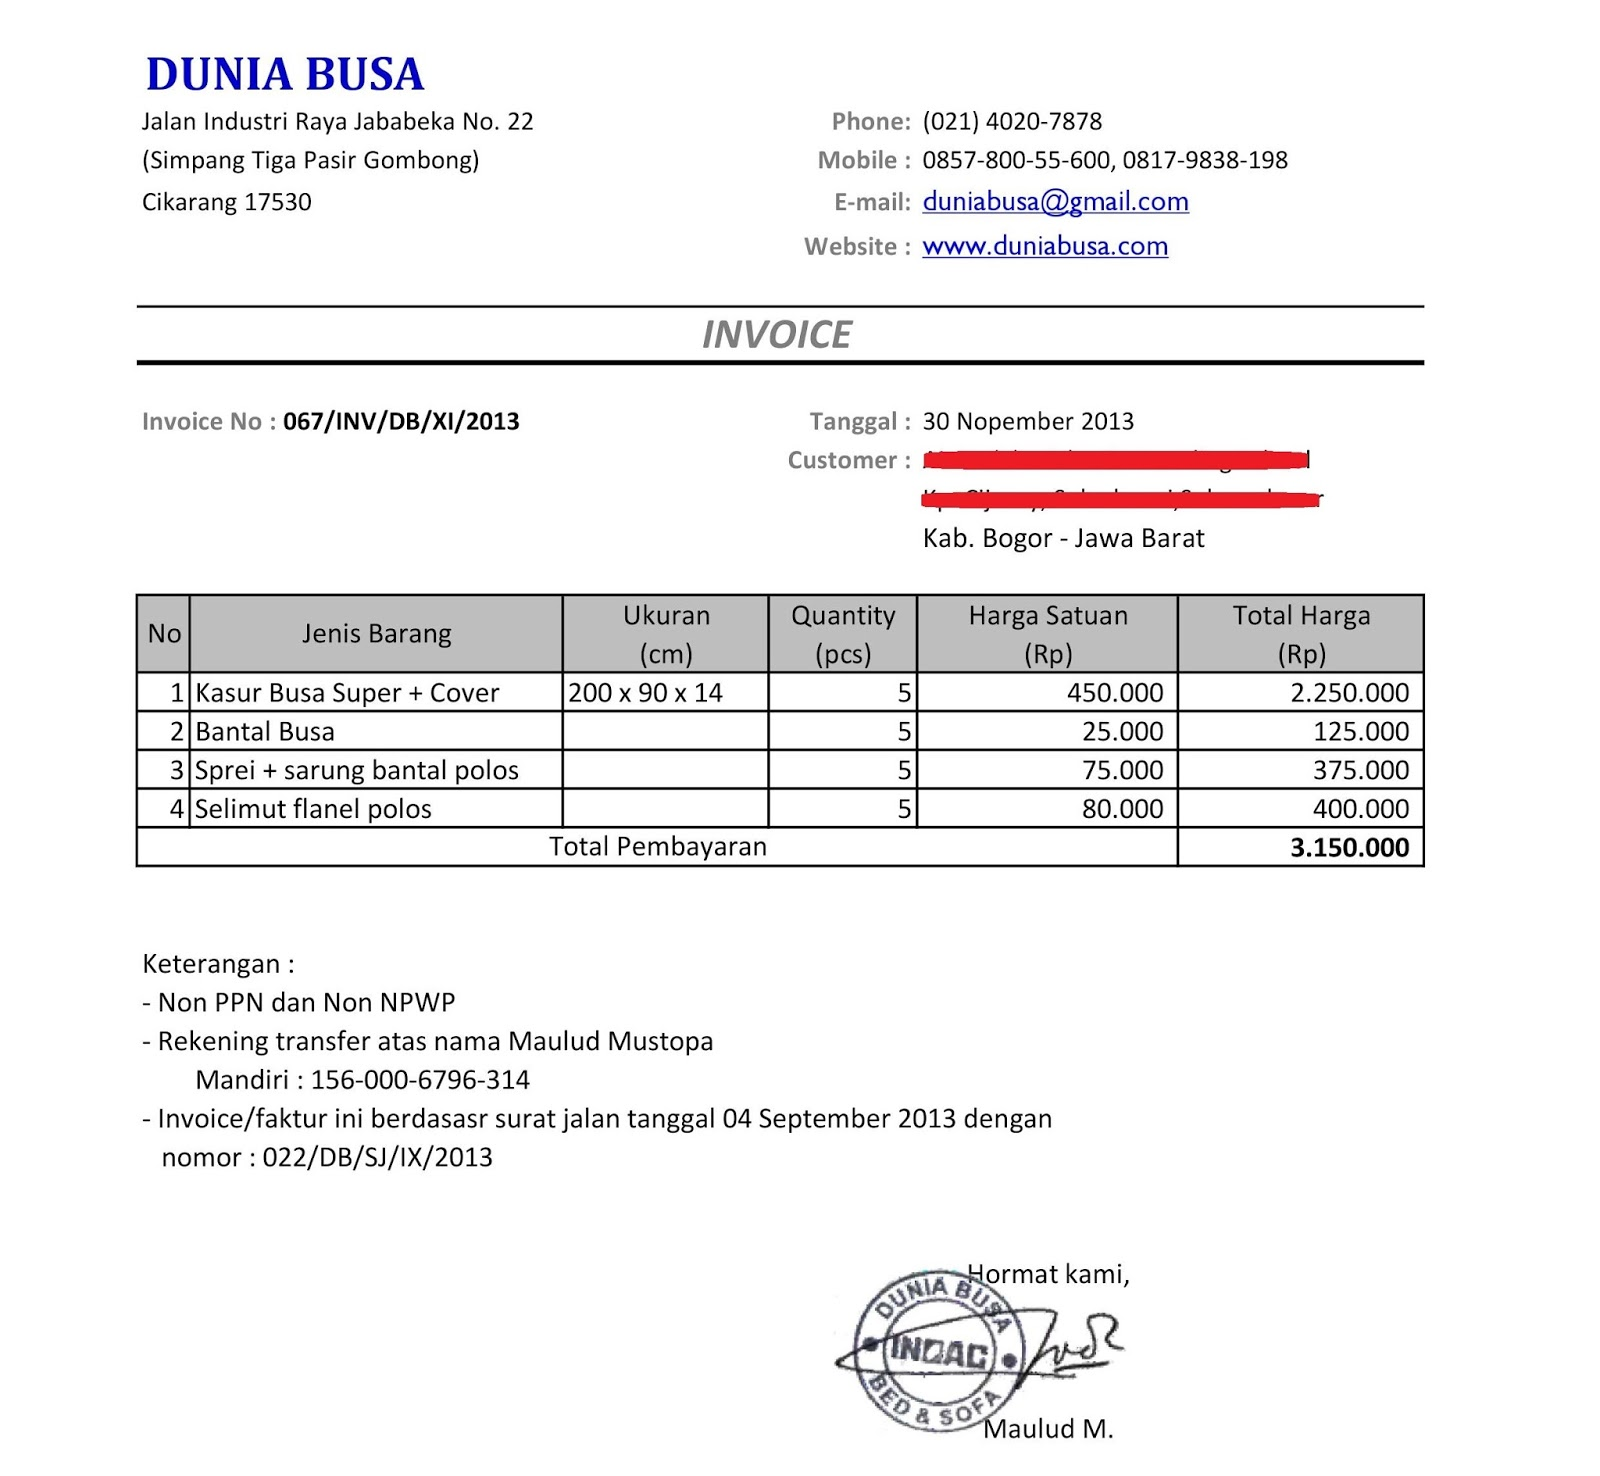 Usdgus  Unique Free Invoice Online  Create Invoice Online  Invoice Template  With Licious Contoh Format Invoice Atau Surat Tagihan  Brankas Arsip  Free Invoice Online With Astounding Invoice Generator Online Free Also Sample Invoice For Freelance Work In Addition Open Source Invoice Php And Tax Invoice Template Pdf As Well As Template For Invoice For Services Additionally Invoice Processing System From Sklepco With Usdgus  Licious Free Invoice Online  Create Invoice Online  Invoice Template  With Astounding Contoh Format Invoice Atau Surat Tagihan  Brankas Arsip  Free Invoice Online And Unique Invoice Generator Online Free Also Sample Invoice For Freelance Work In Addition Open Source Invoice Php From Sklepco